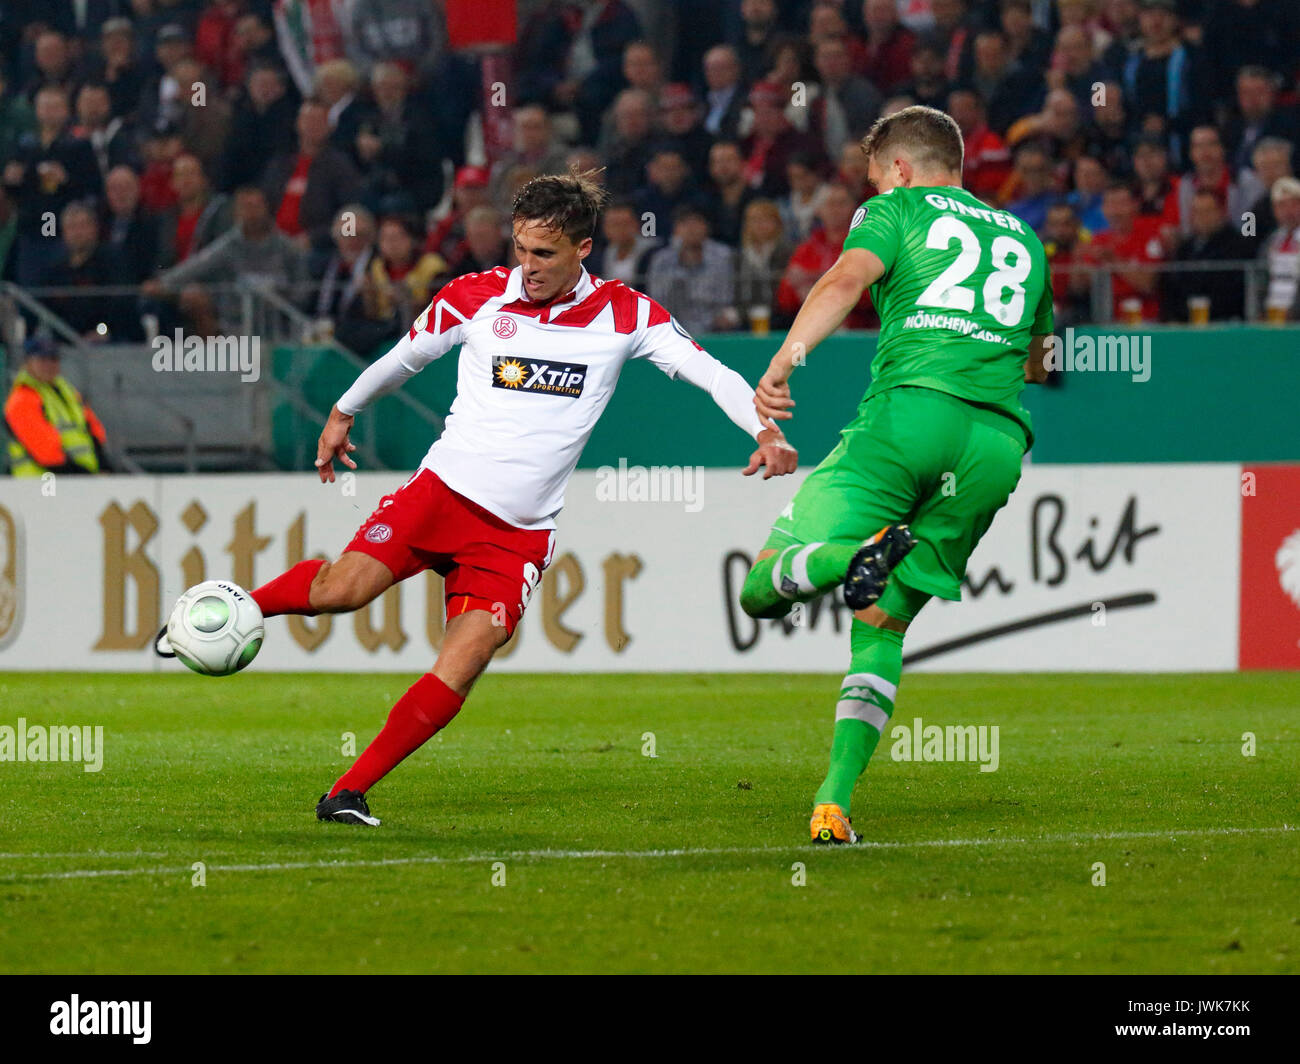 sports, football, DFB Cup, 2017/2018, Round 1, Rot Weiss Essen vs Borussia Moenchengladbach 1:2, Stadium Essen, scene of the match, Marcel Platzek (RWE) left shooting on goal and Matthias Ginter (MG) - Stock Image